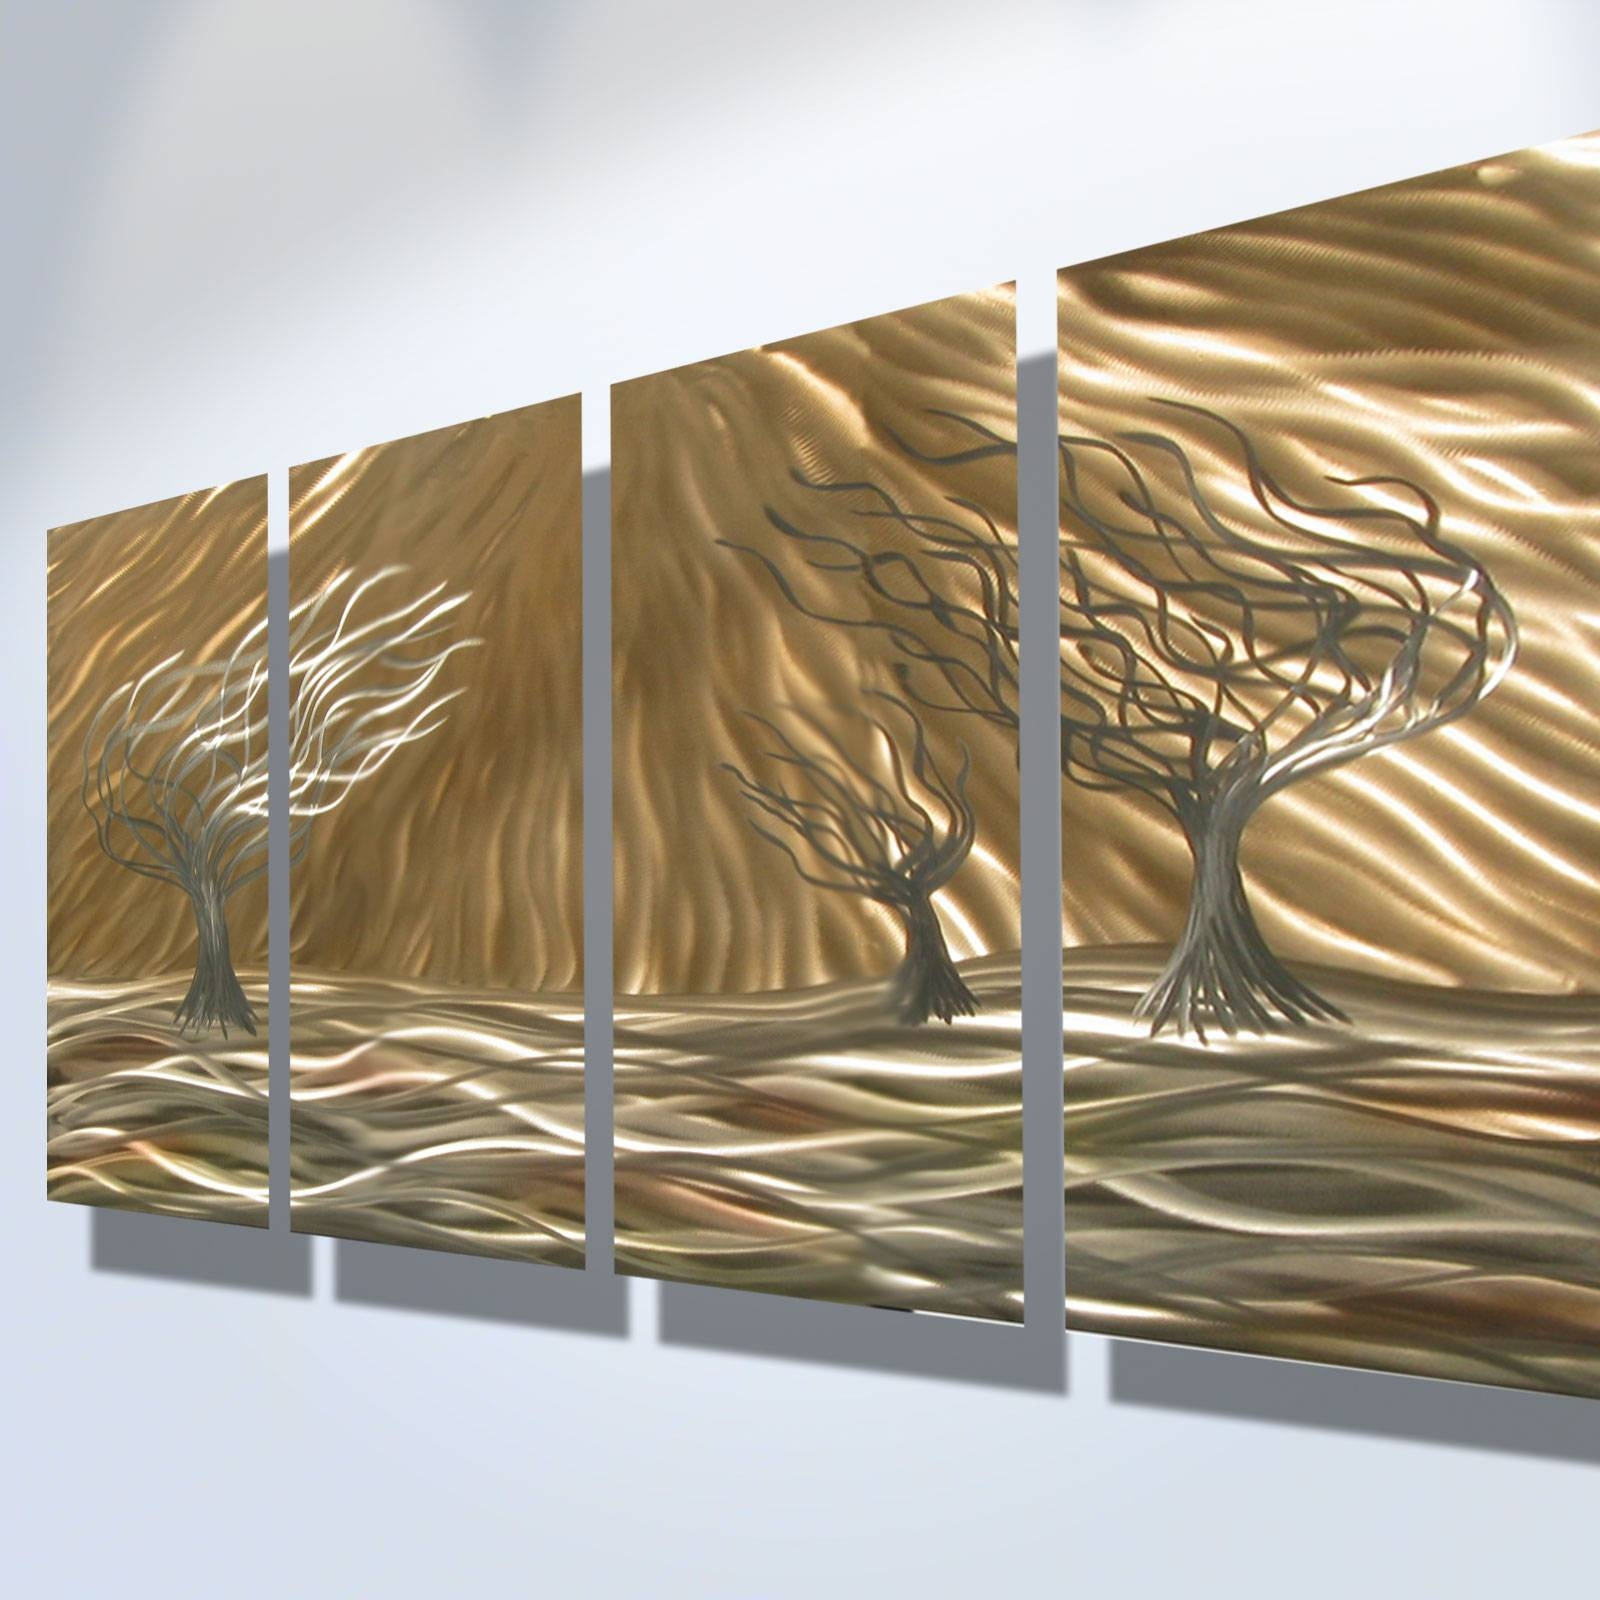 3 Trees 4 Panel - Abstract Metal Wall Art Contemporary Modern intended for Most Recent Cheap Metal Wall Art